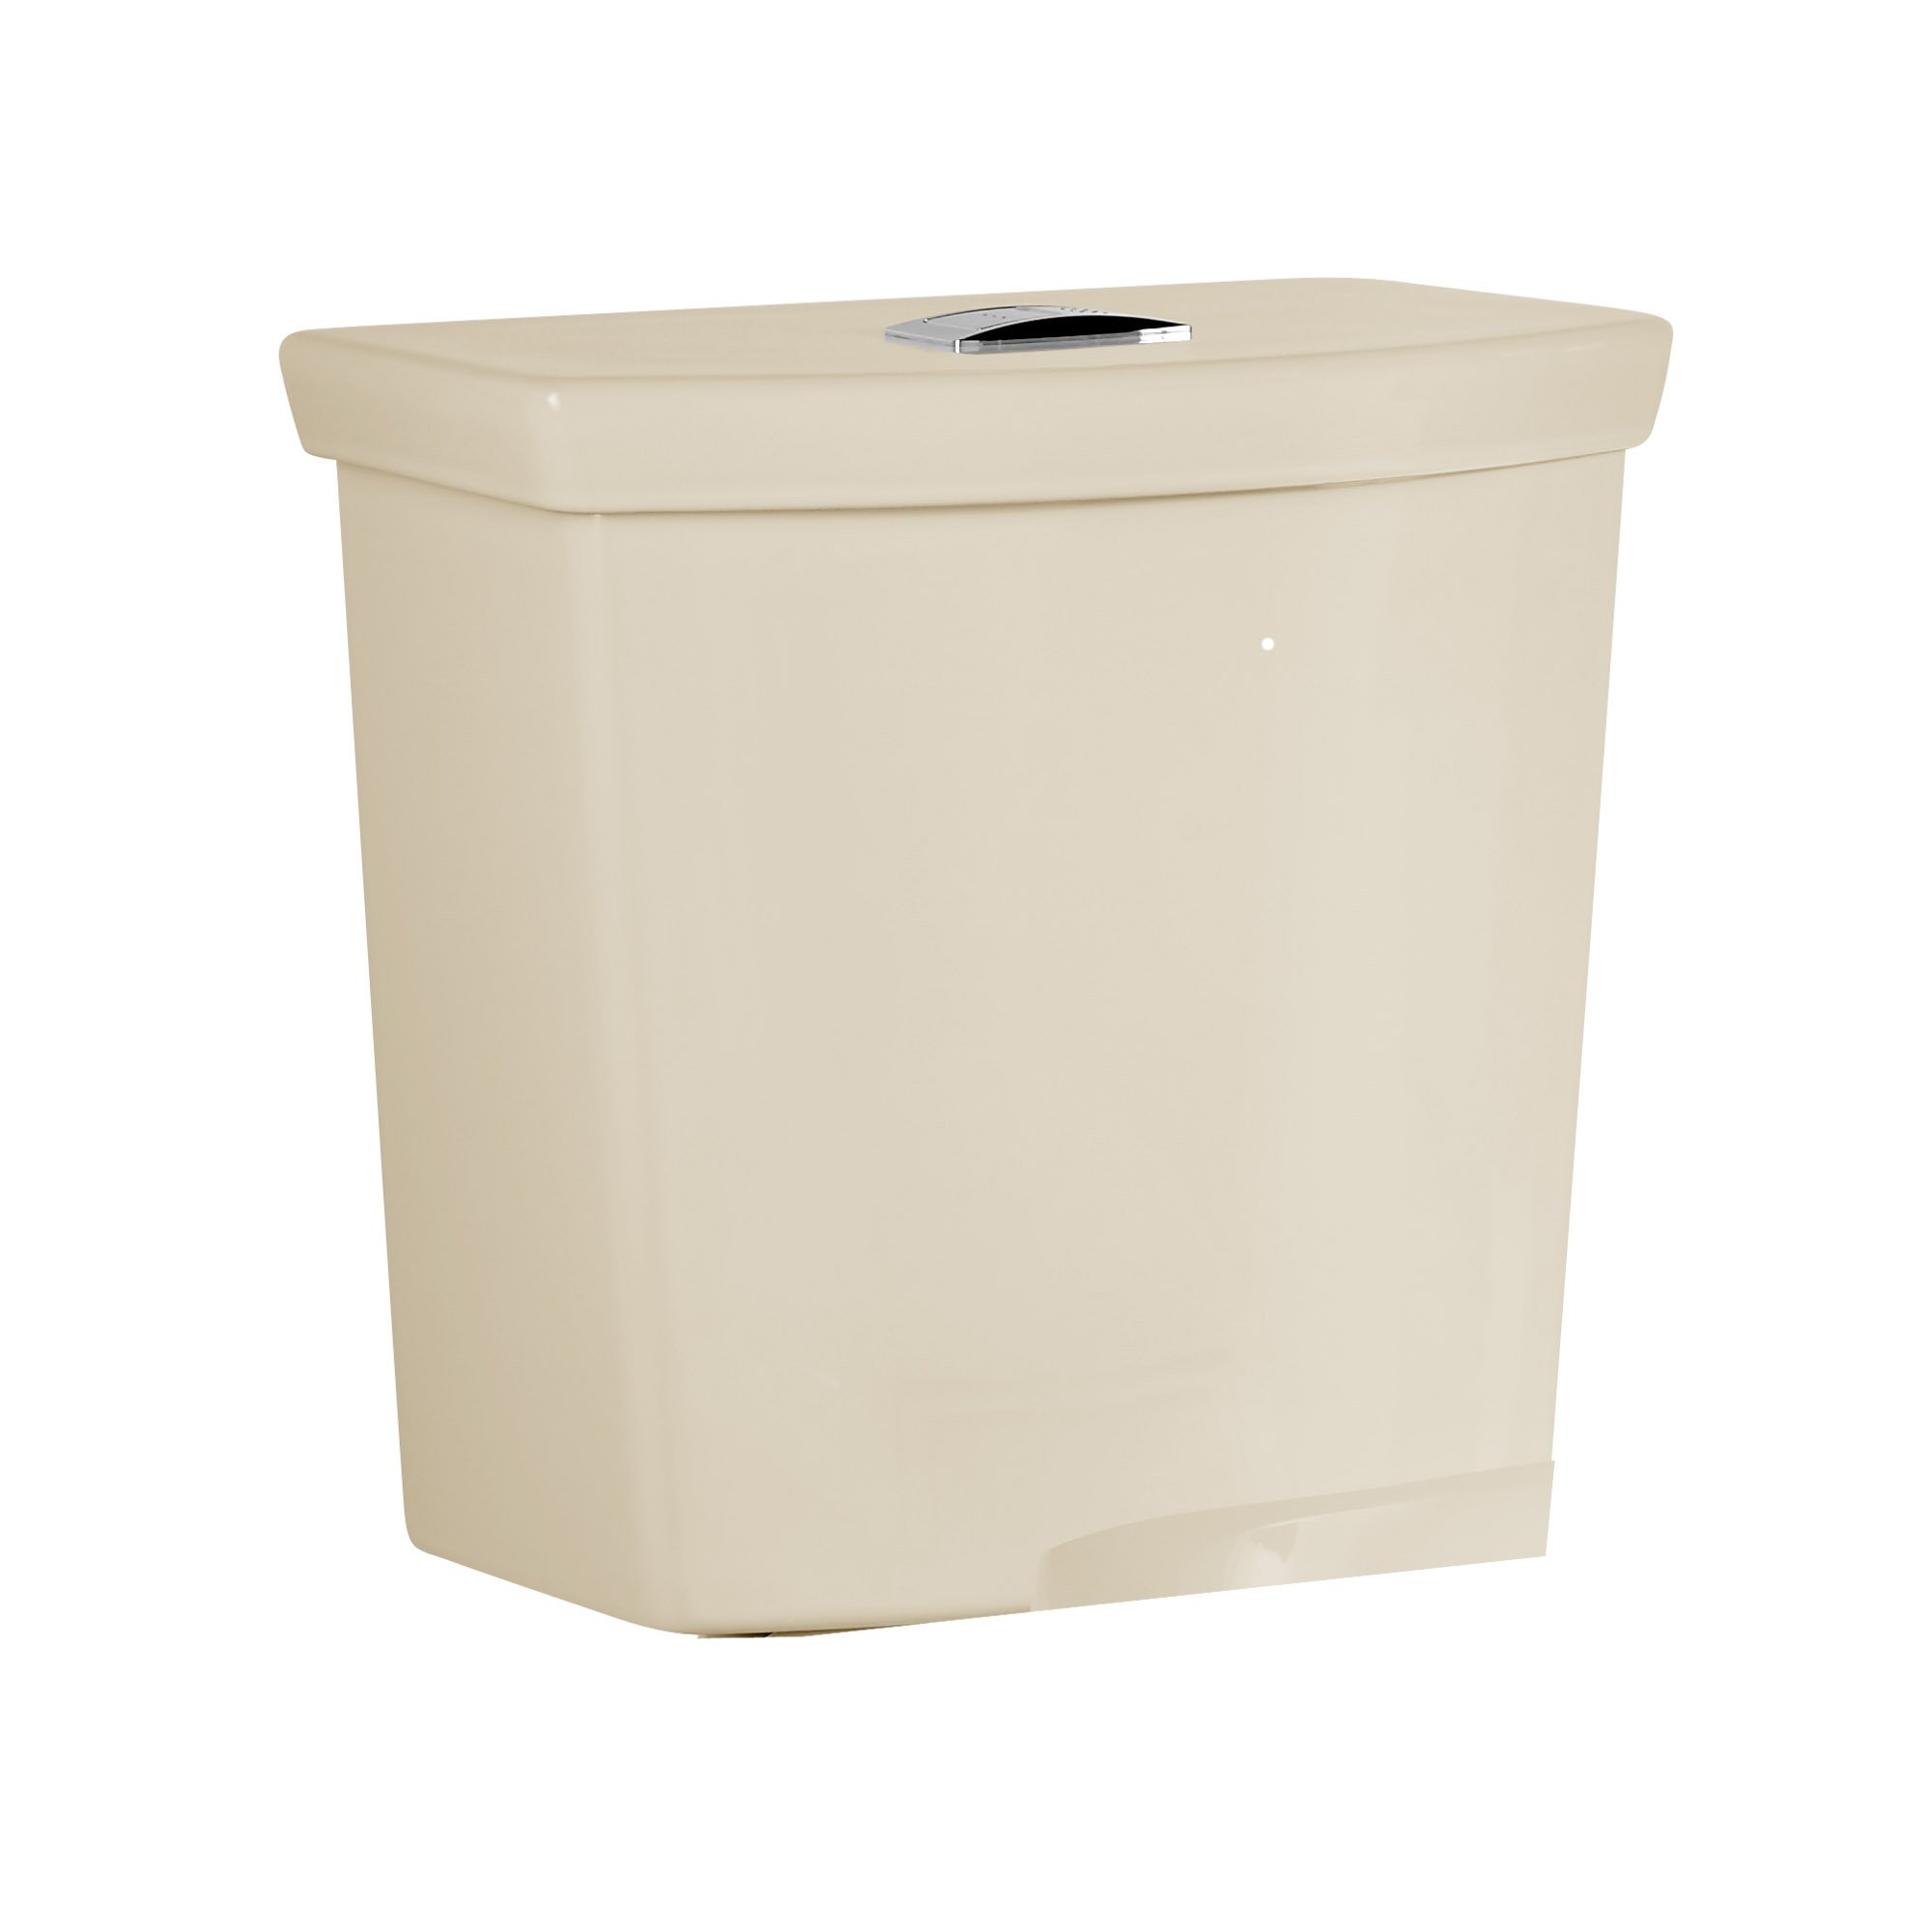 American Standard 4133A518.021 H2Option Dual Flush 12'' Rough-In Toilet Tank with Liner, Bone